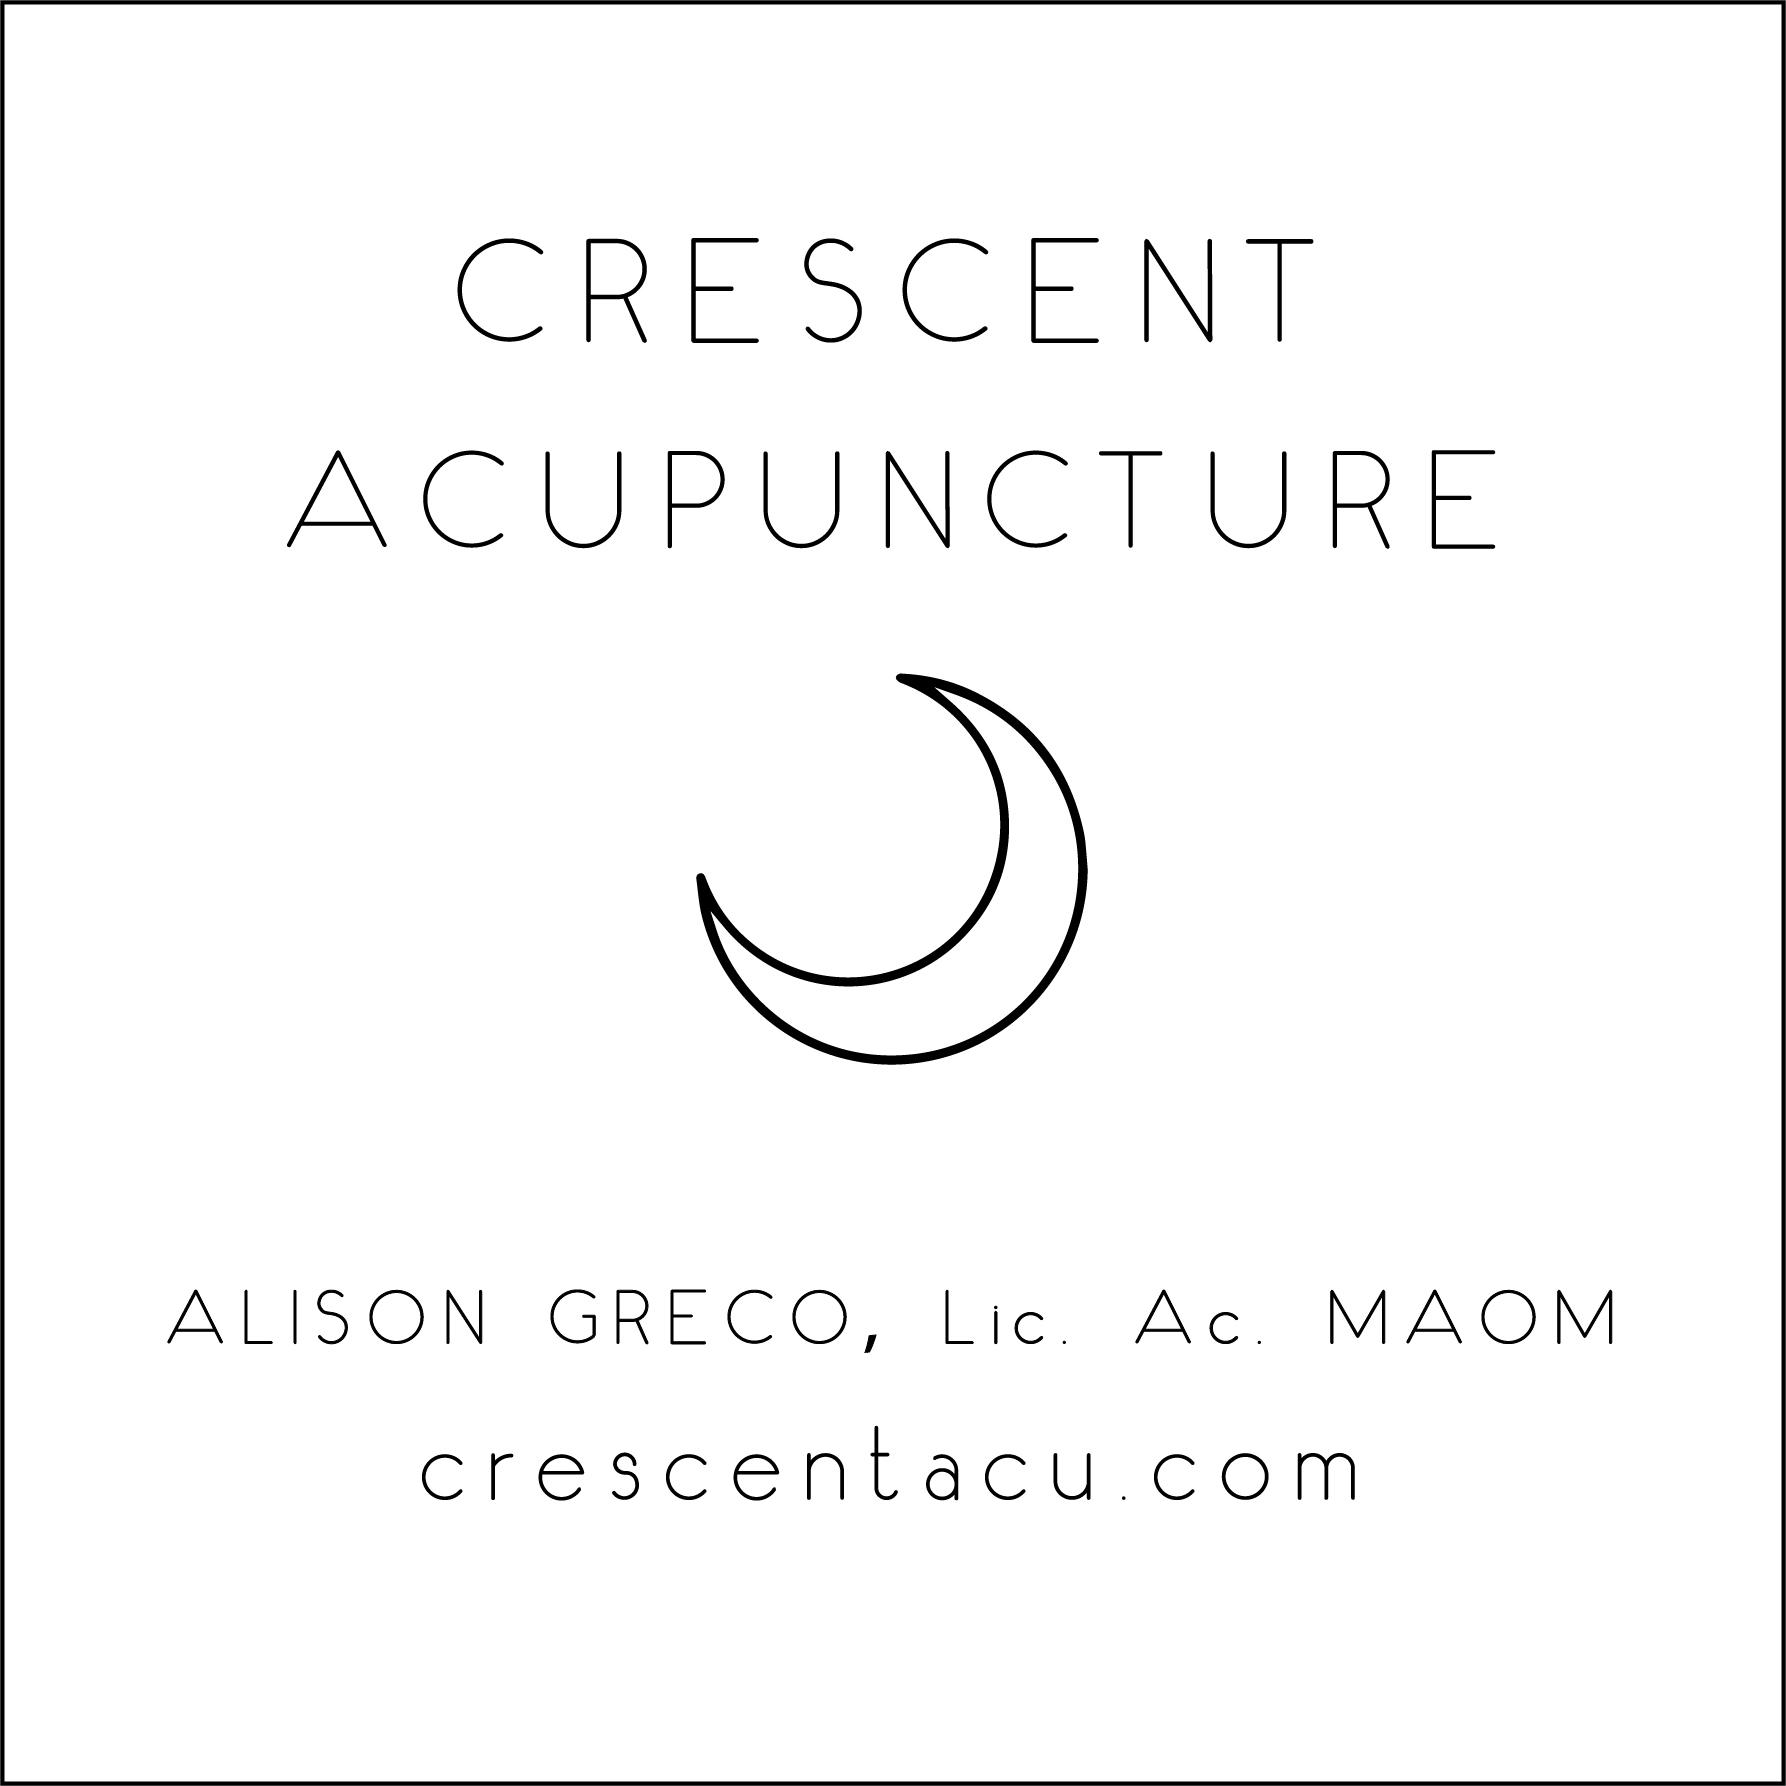 Crescent Acupuncture Logo